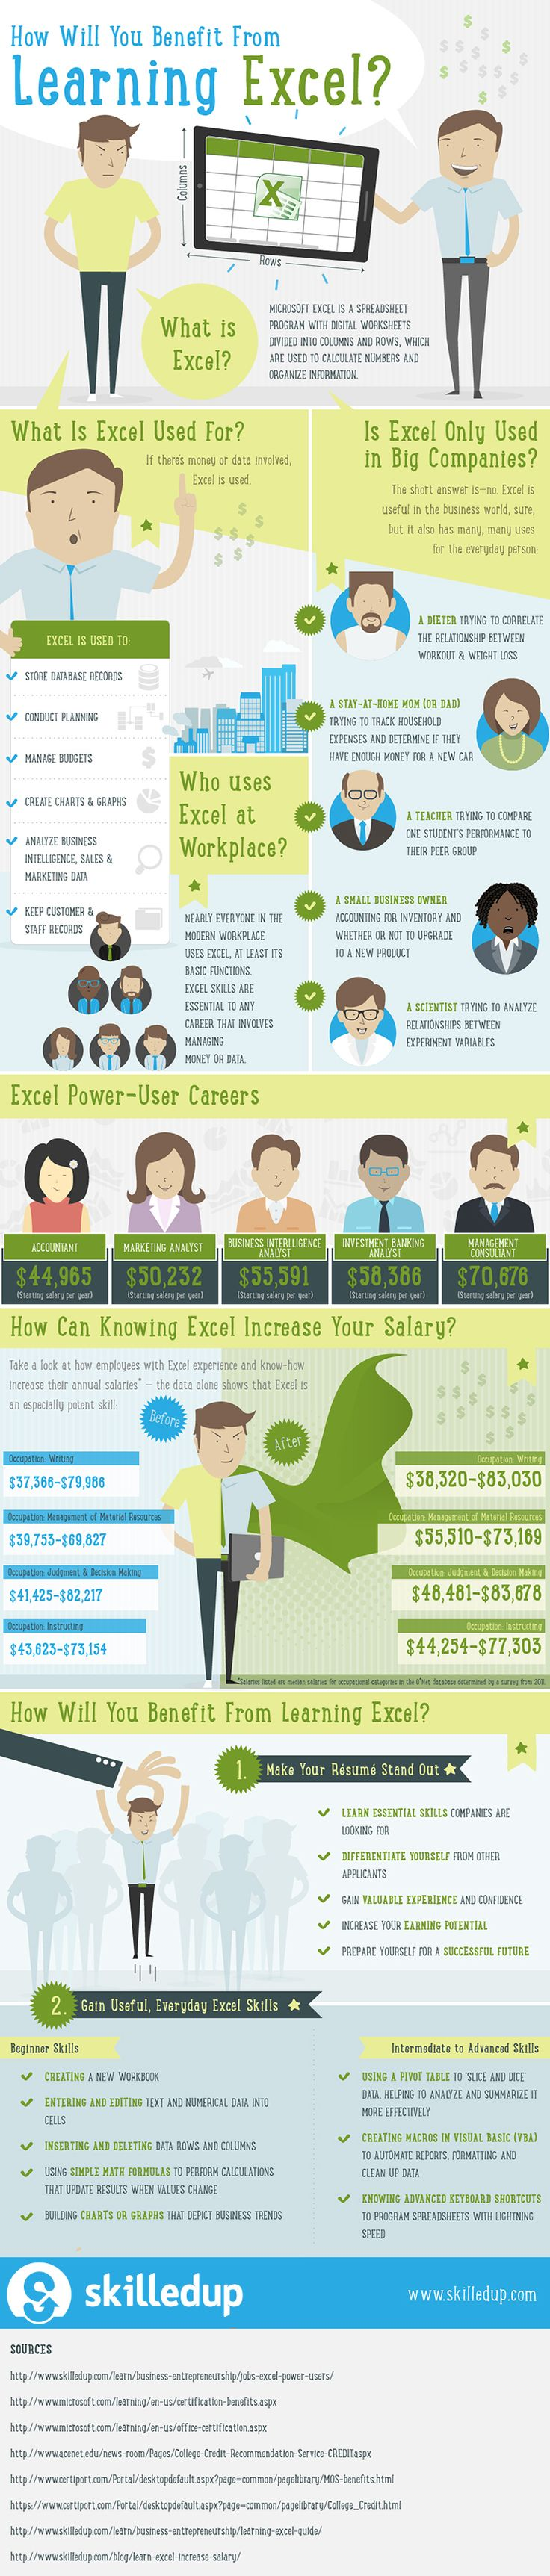 The Career Value of Knowing Microsoft Excel